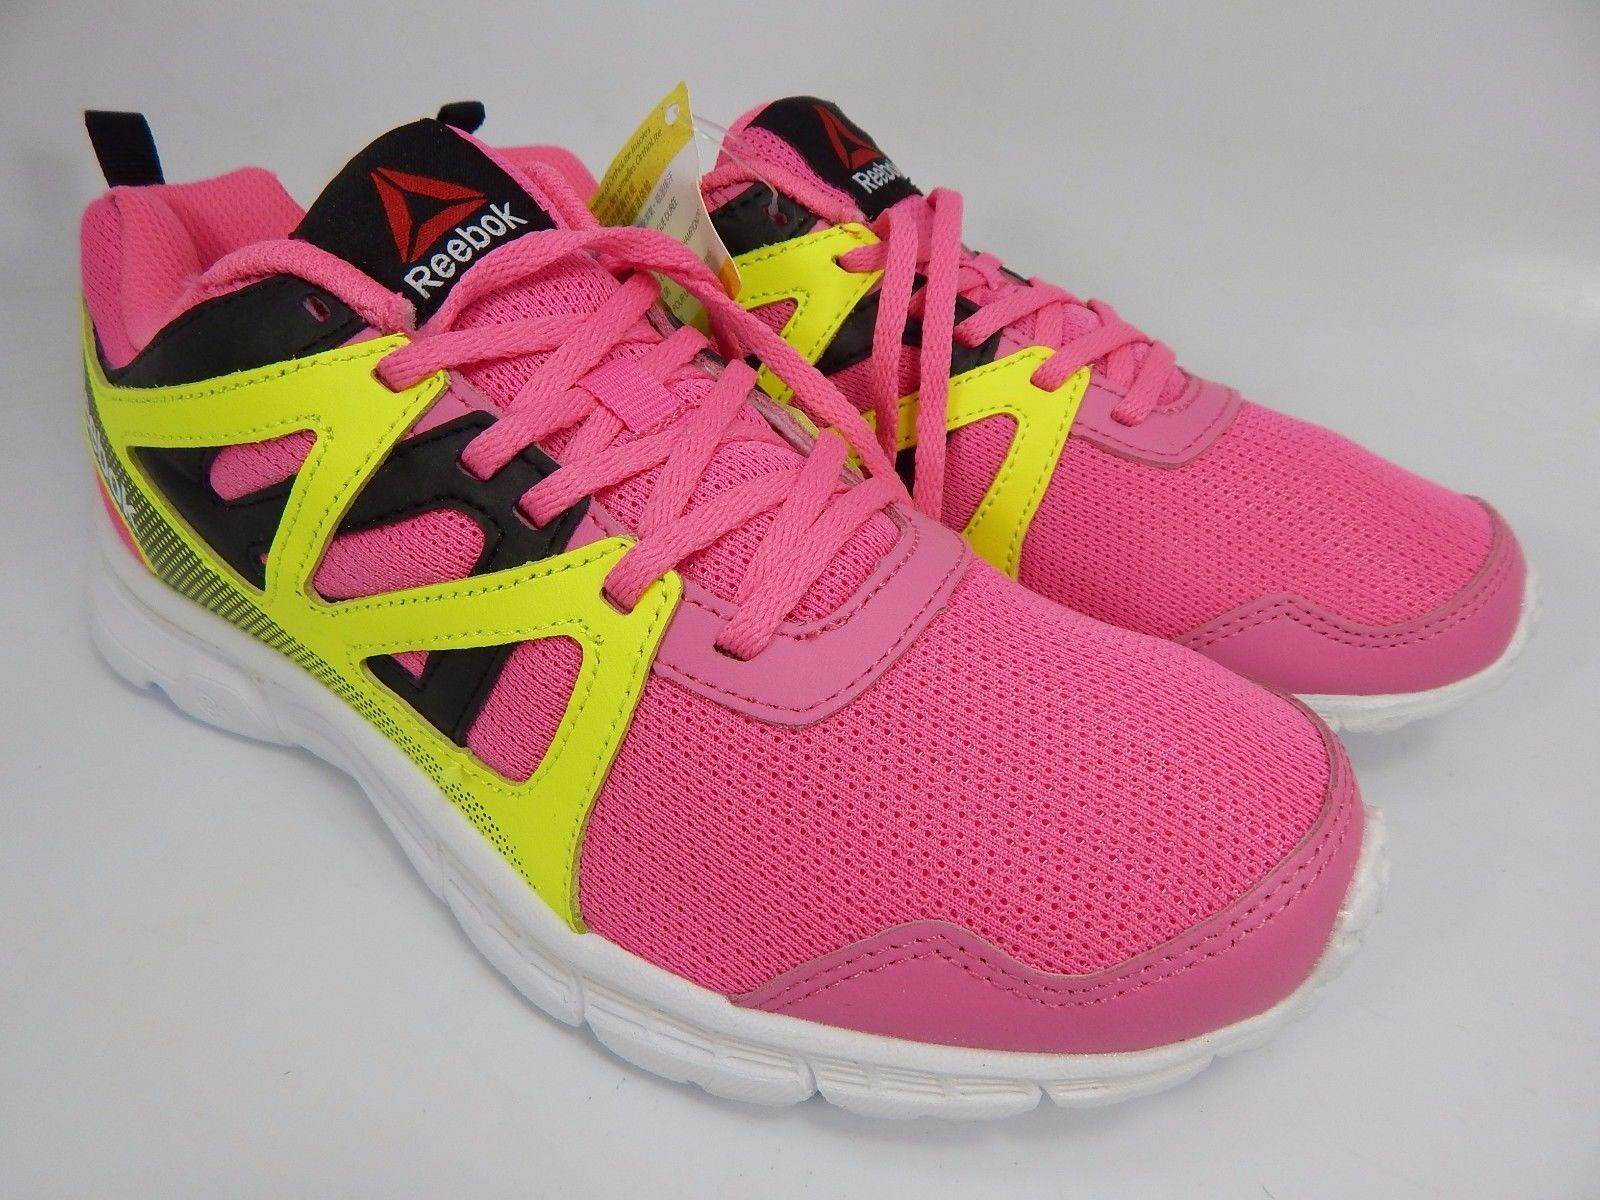 Reebok Run Supreme 2.0 Girl's Running Shoe Sneakers US 5.5 Y EU 37 Pink AR3474